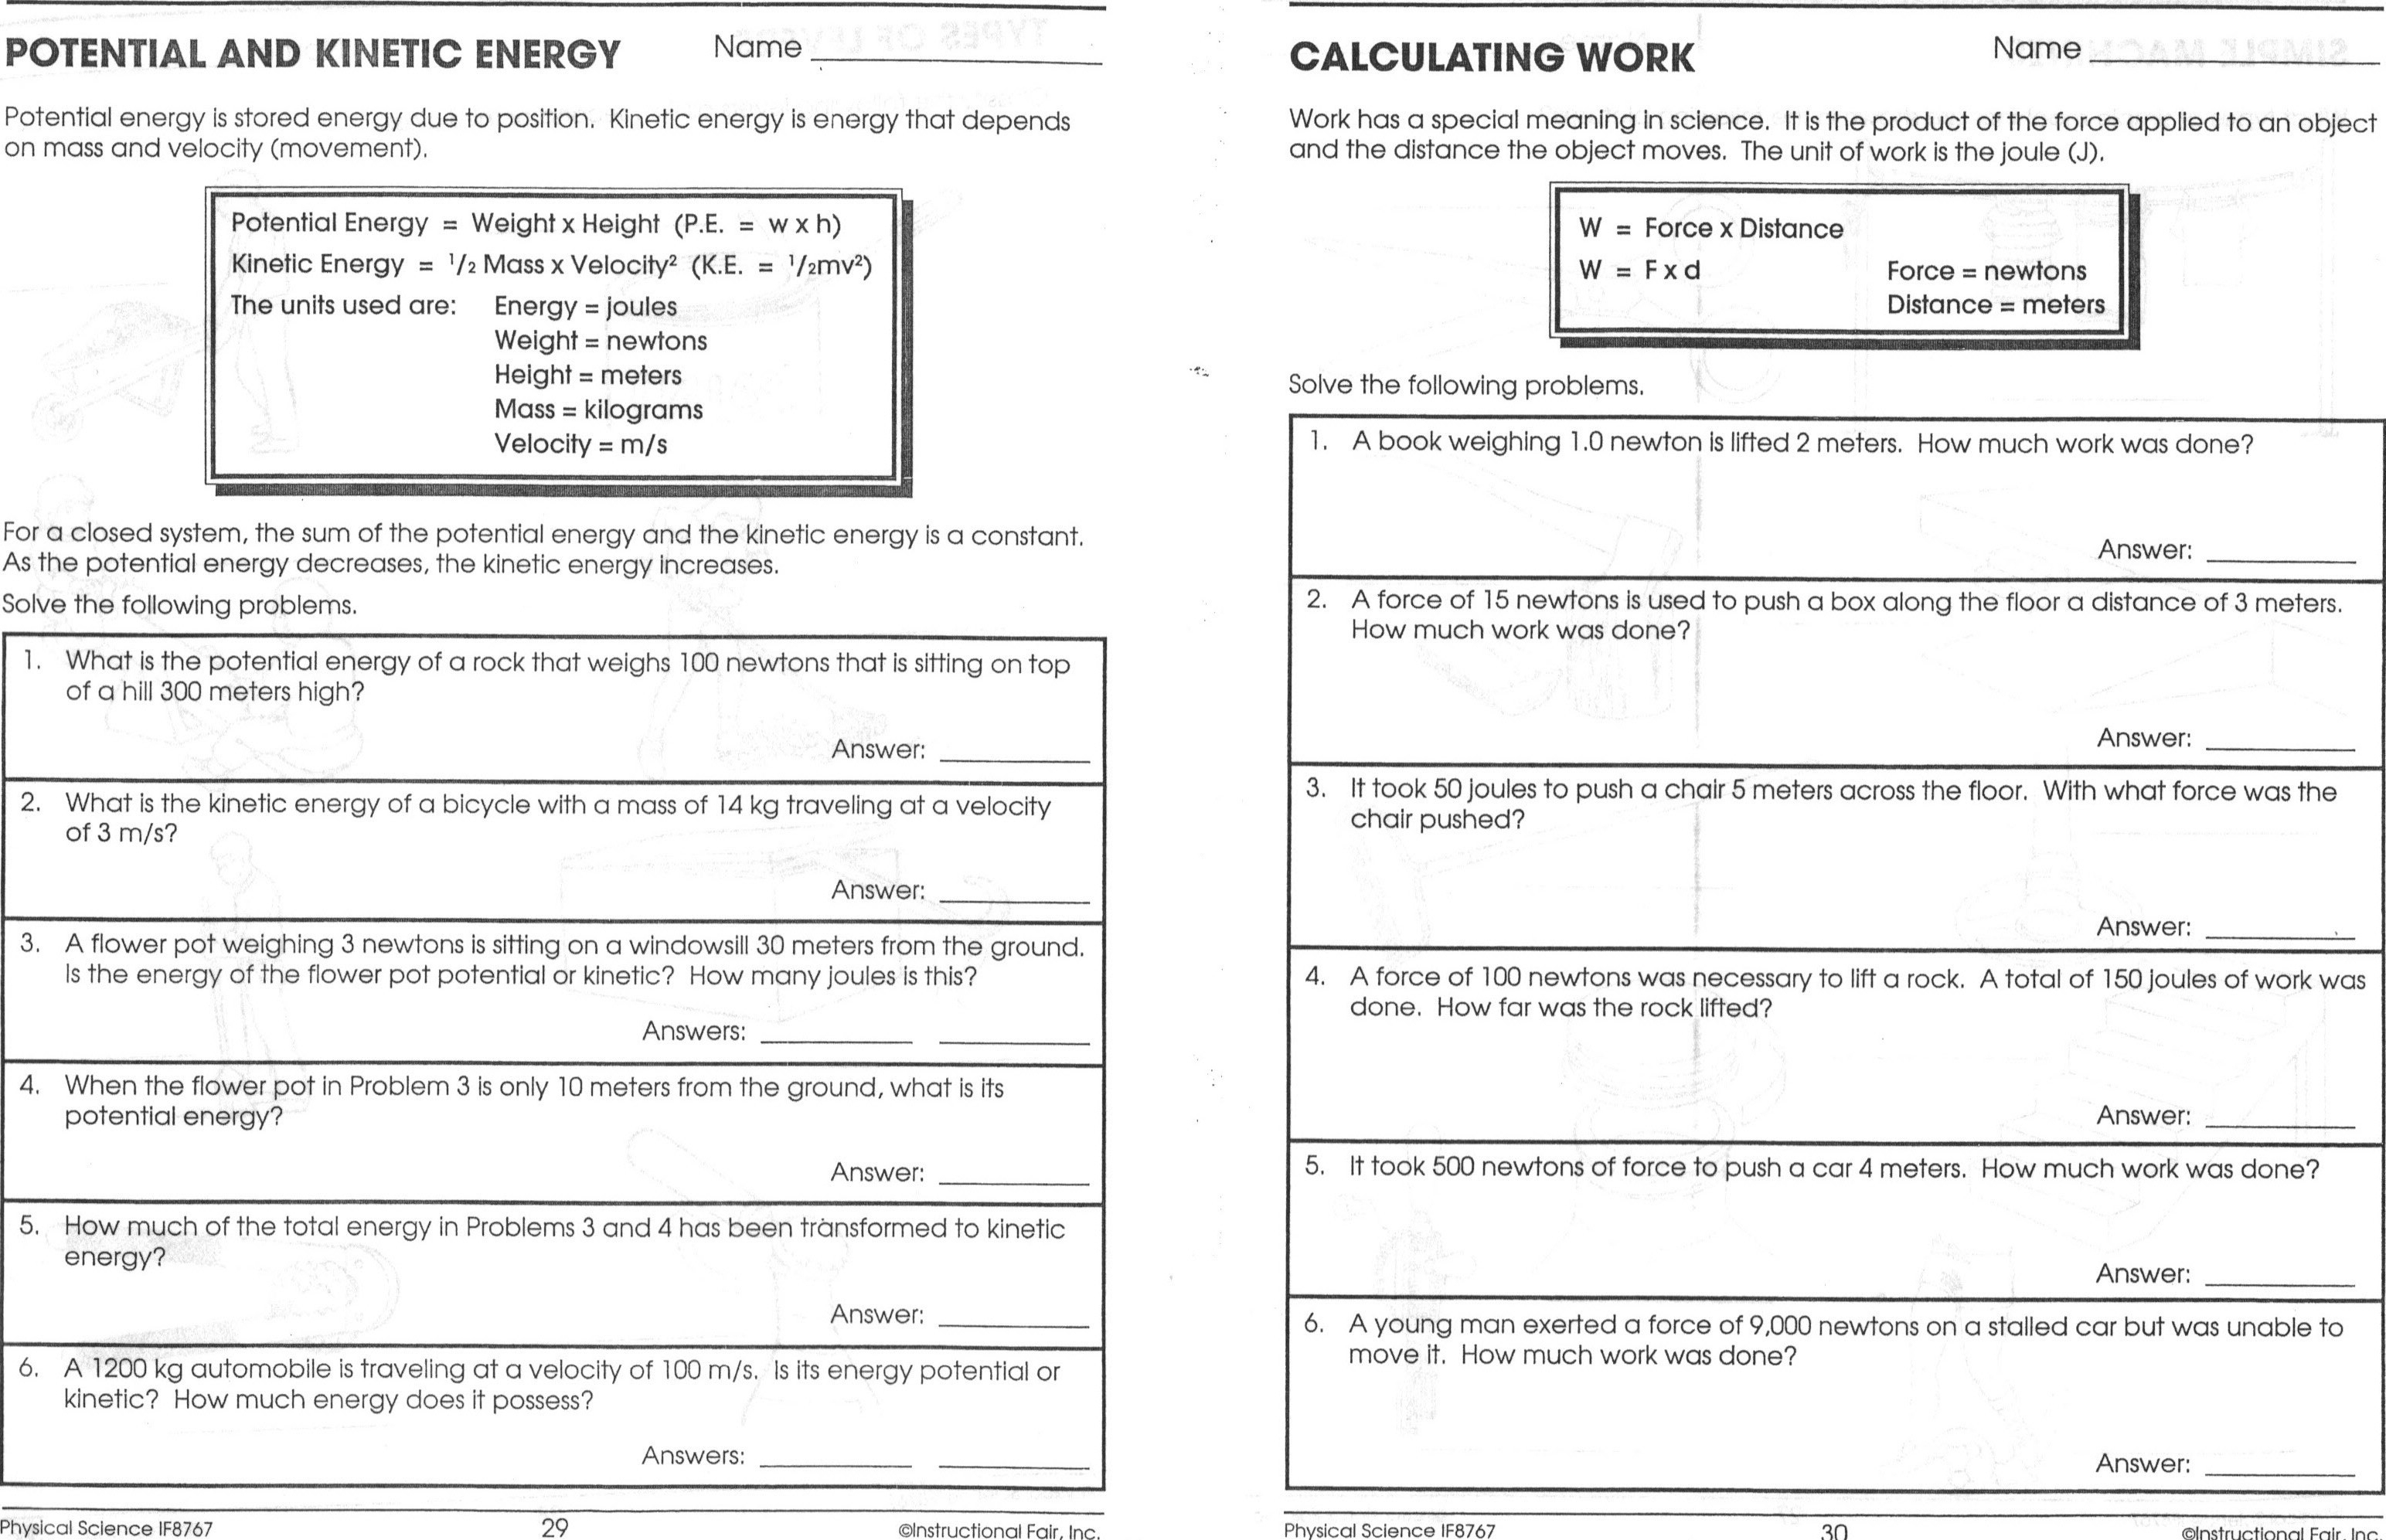 Best Of Potential Vs Kinetic Energy Worksheet Answers New Collection | Free Printable Worksheets On Potential And Kinetic Energy